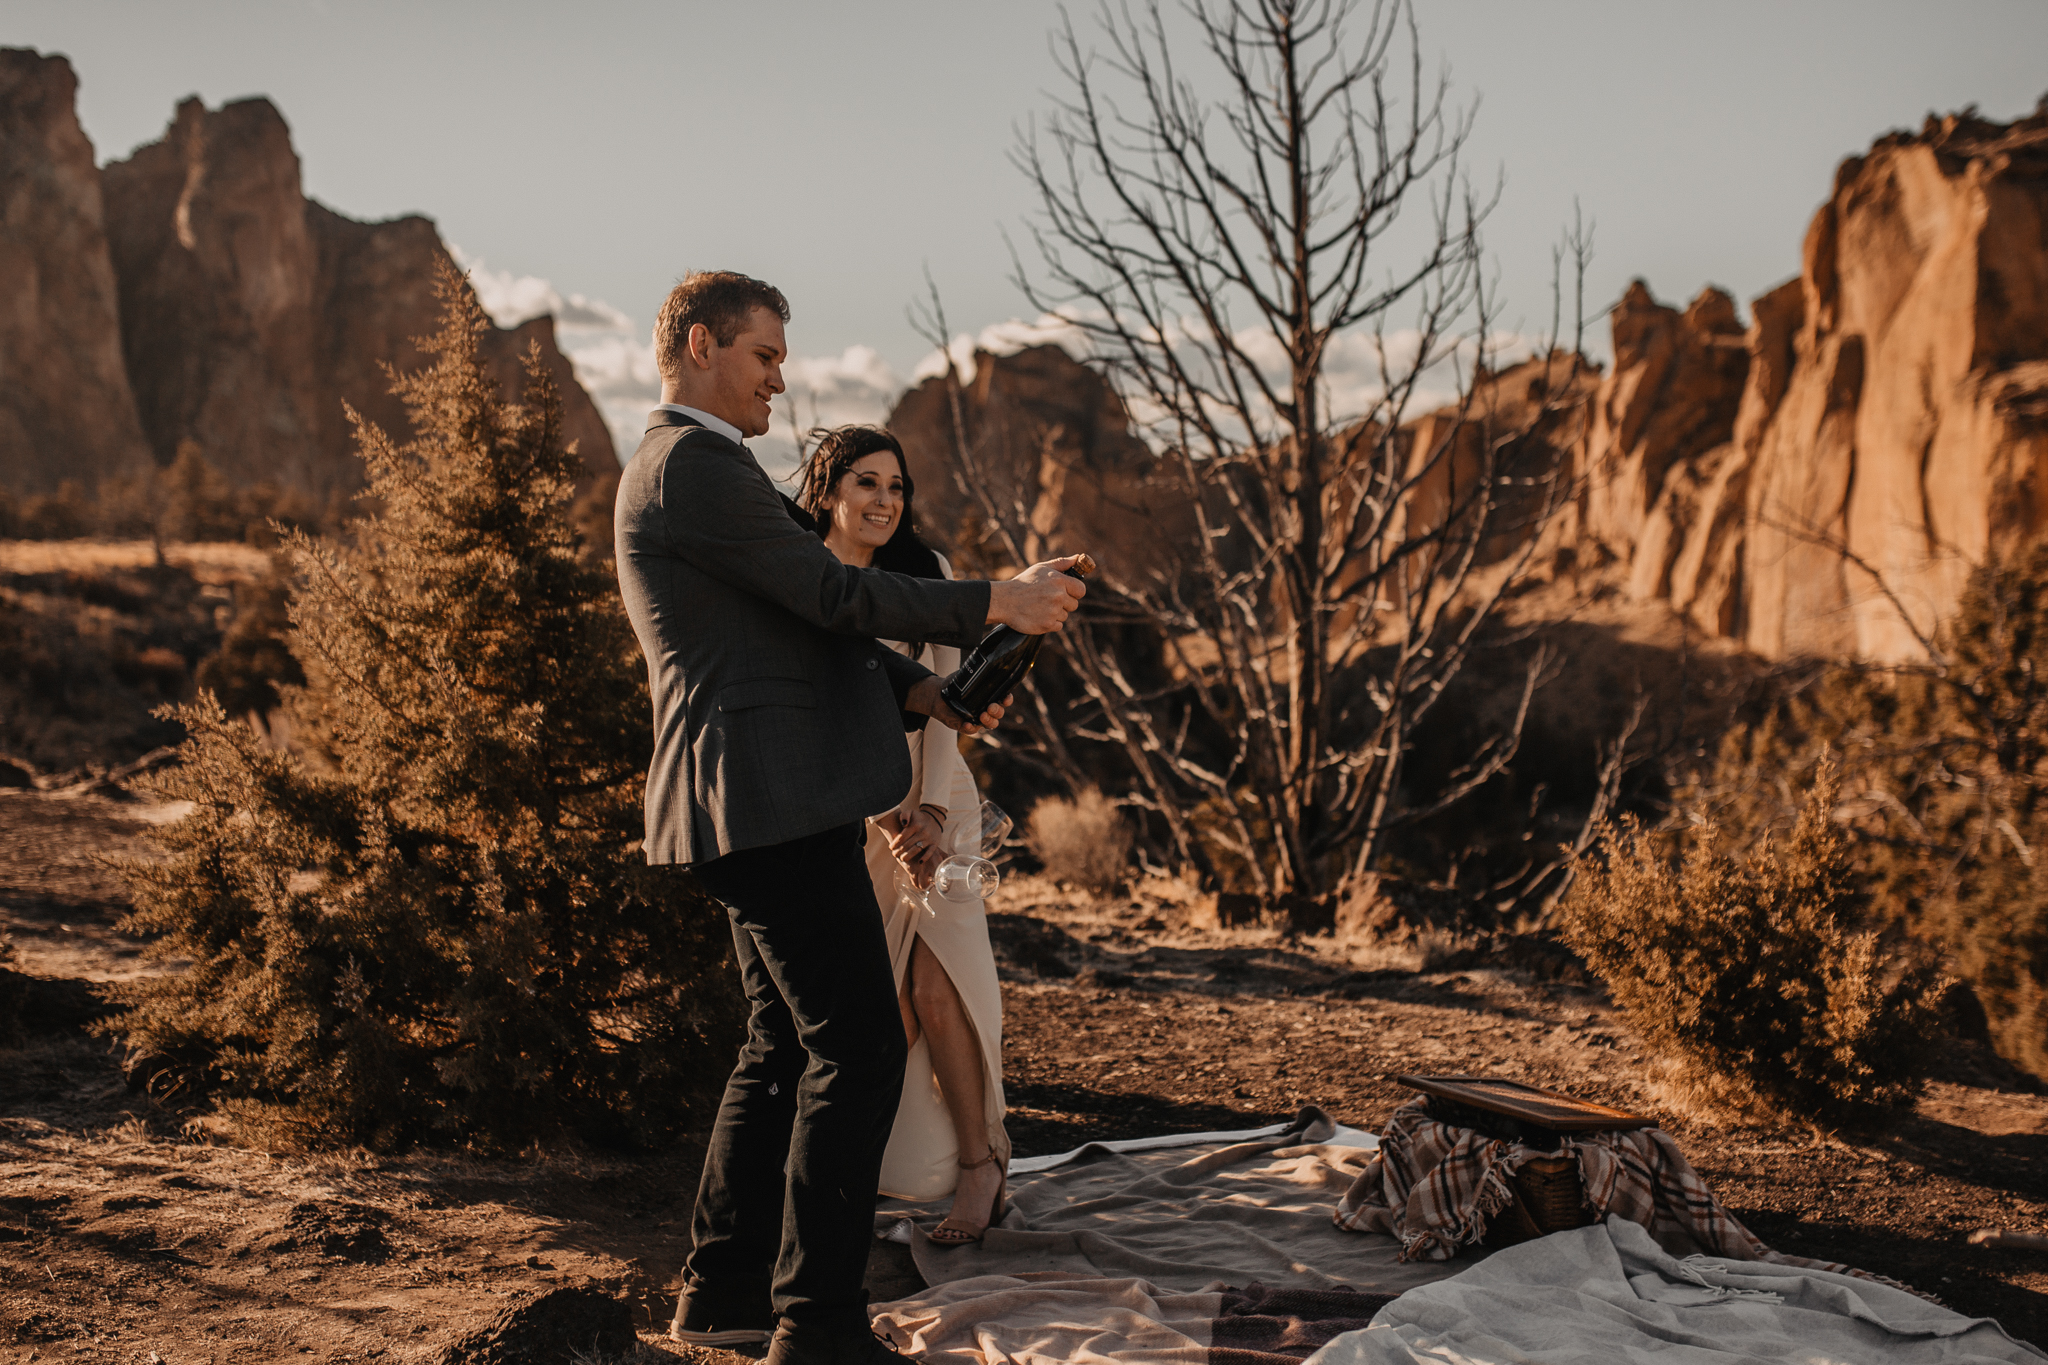 smith-rock-oregon-elopement-37.jpg